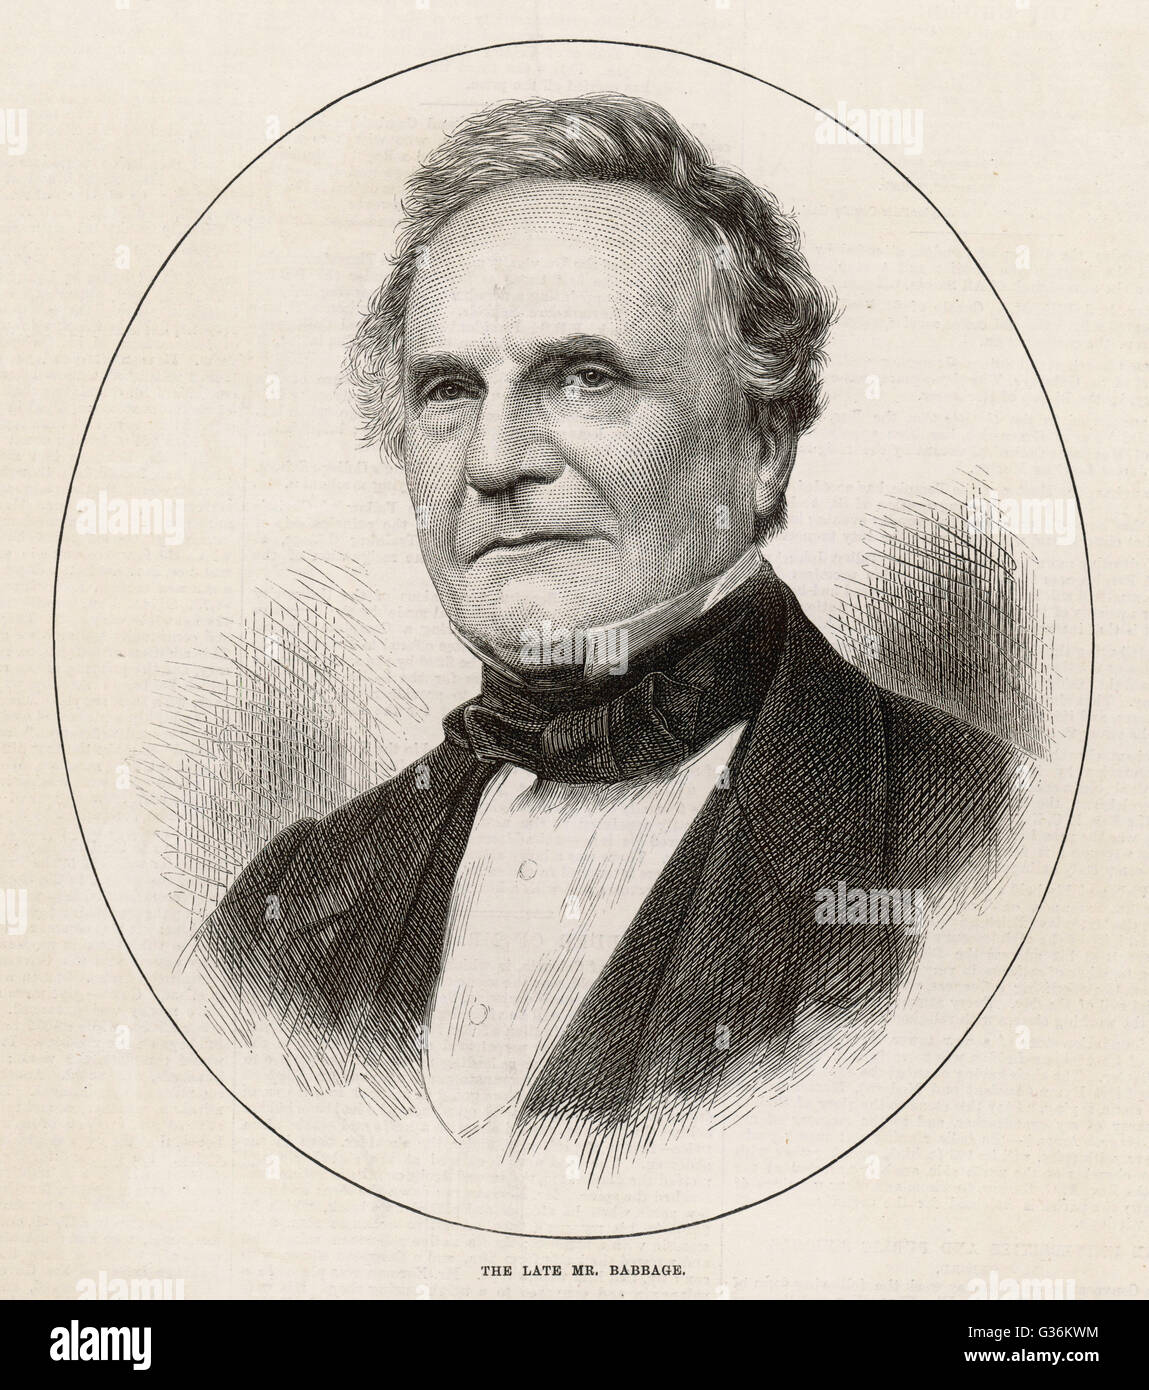 Charles Babbage (1792-1871) Mathematician and engineer - Stock Image